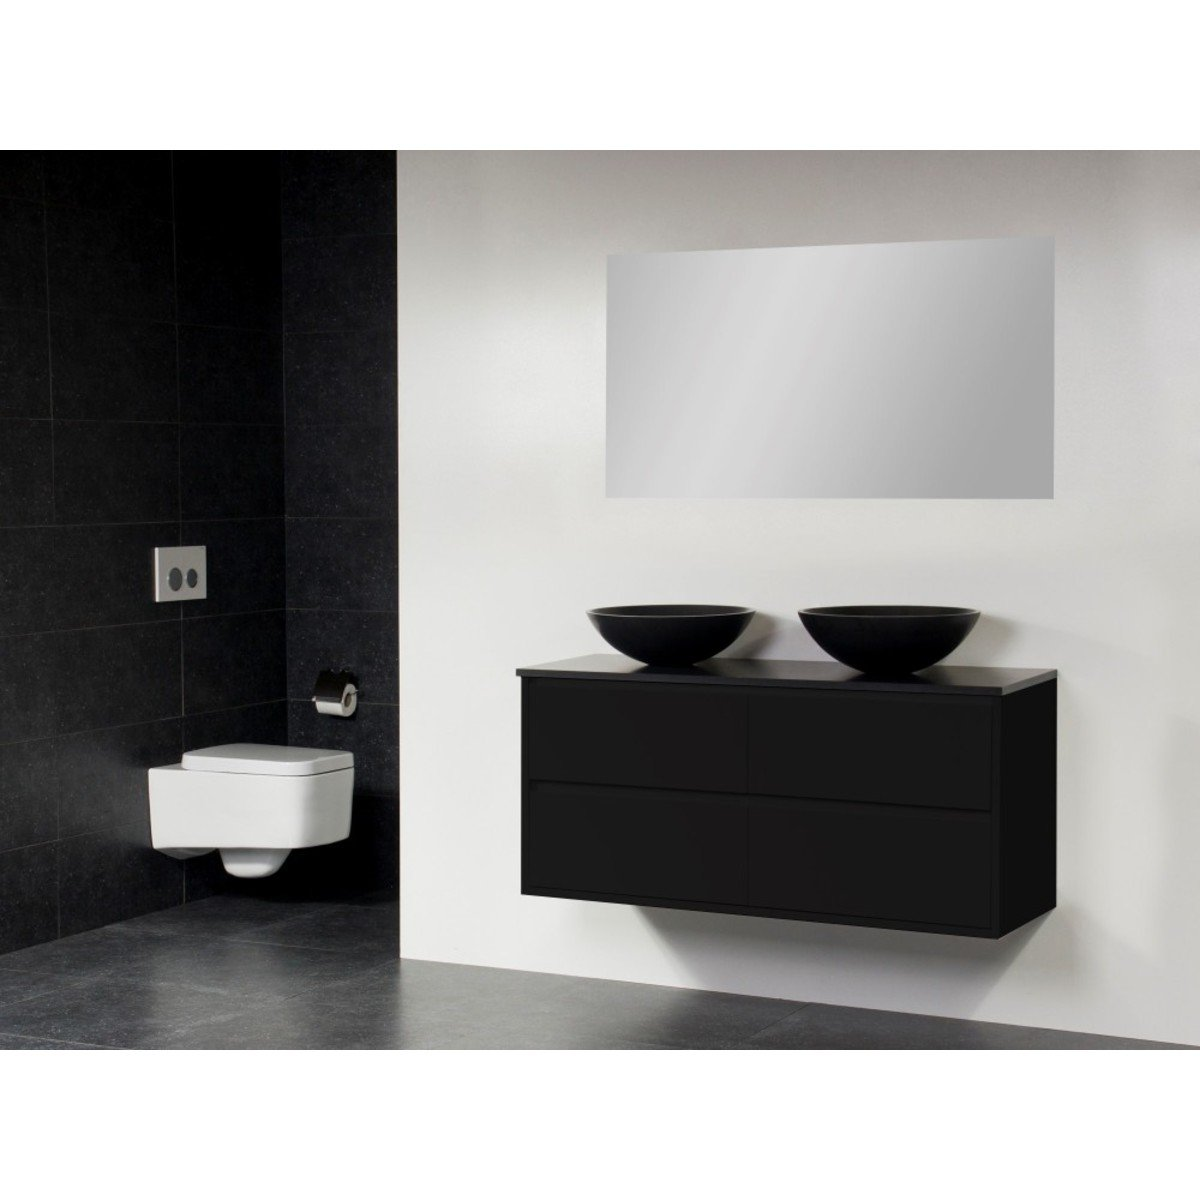 saniclass new future corestone13 meuble salle de bain avec vasque poser noir 120cm avec miroir. Black Bedroom Furniture Sets. Home Design Ideas